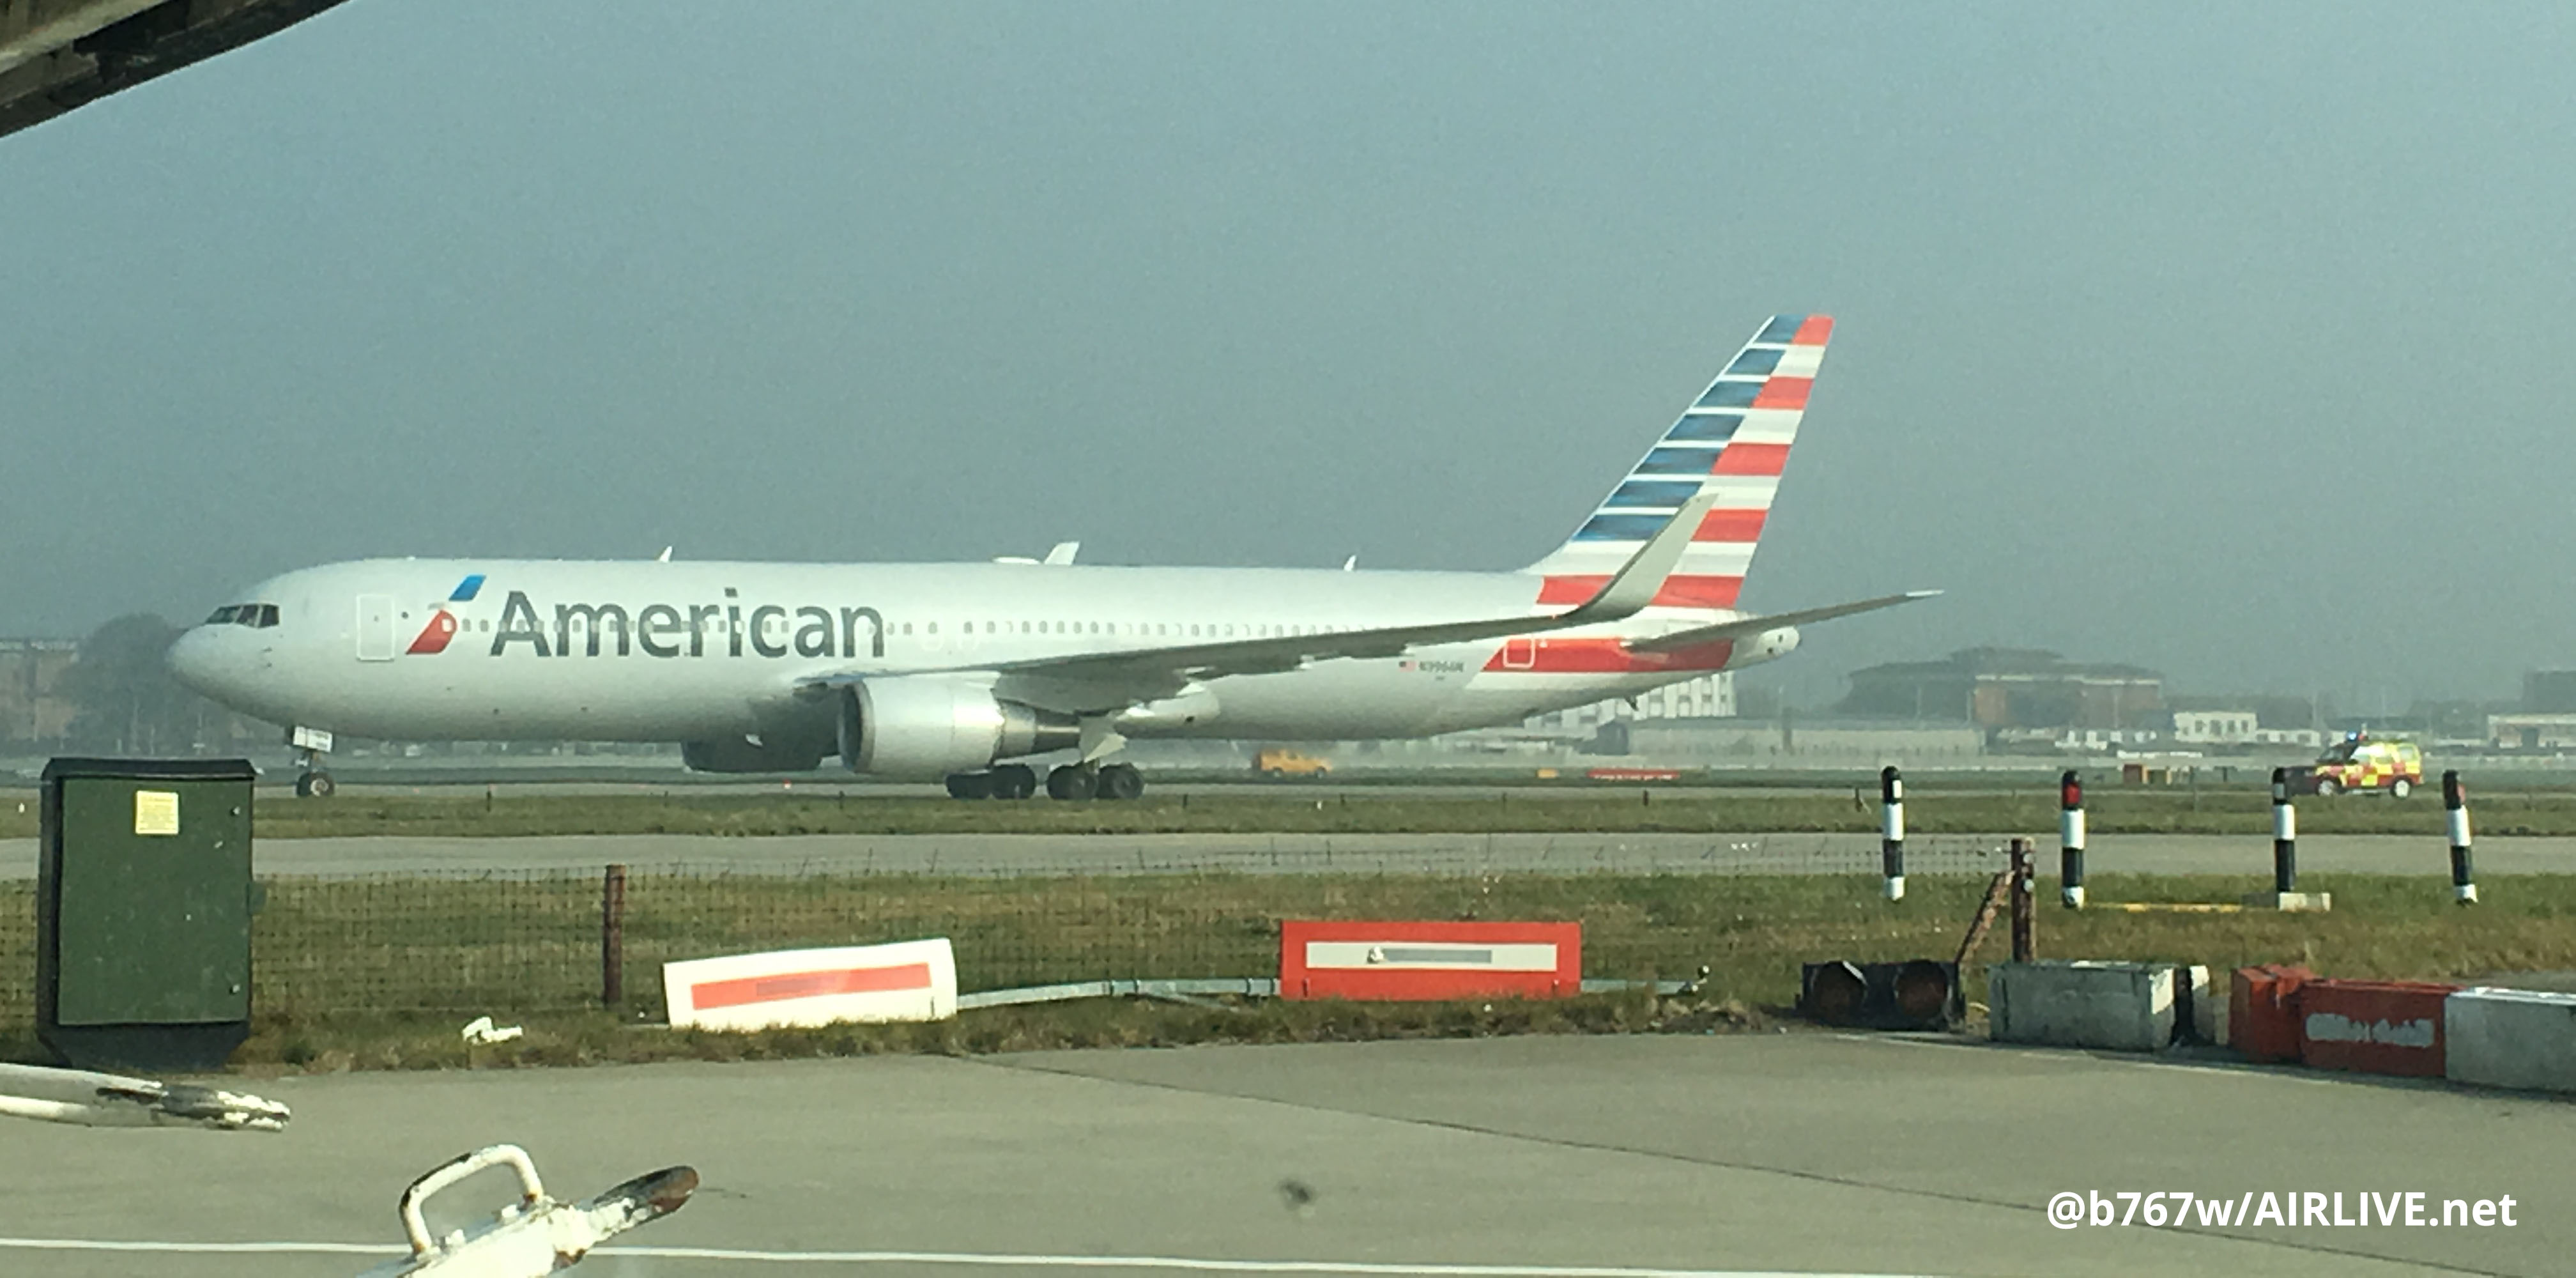 BREAKING American Airlines Boeing 767 #AA87 reported ...